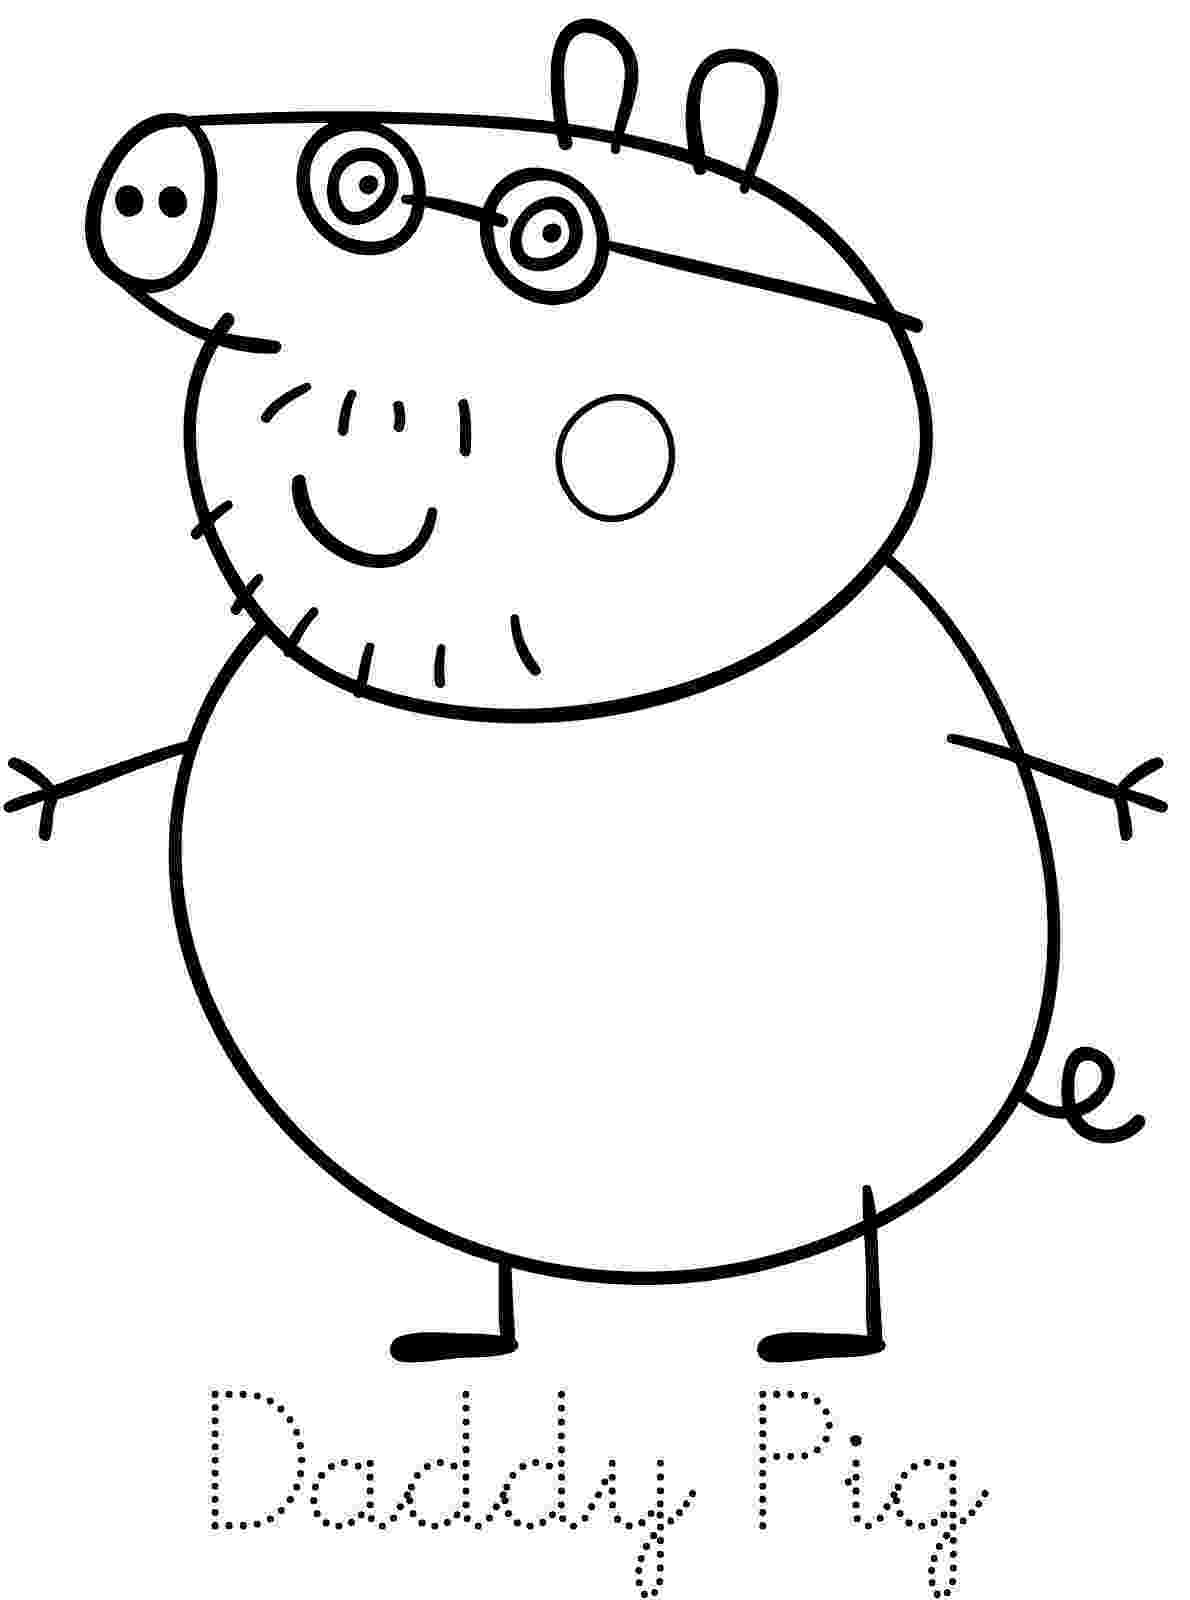 coloring book peppa pig peppa pig colouring pages printable pictures and sheets peppa book coloring pig